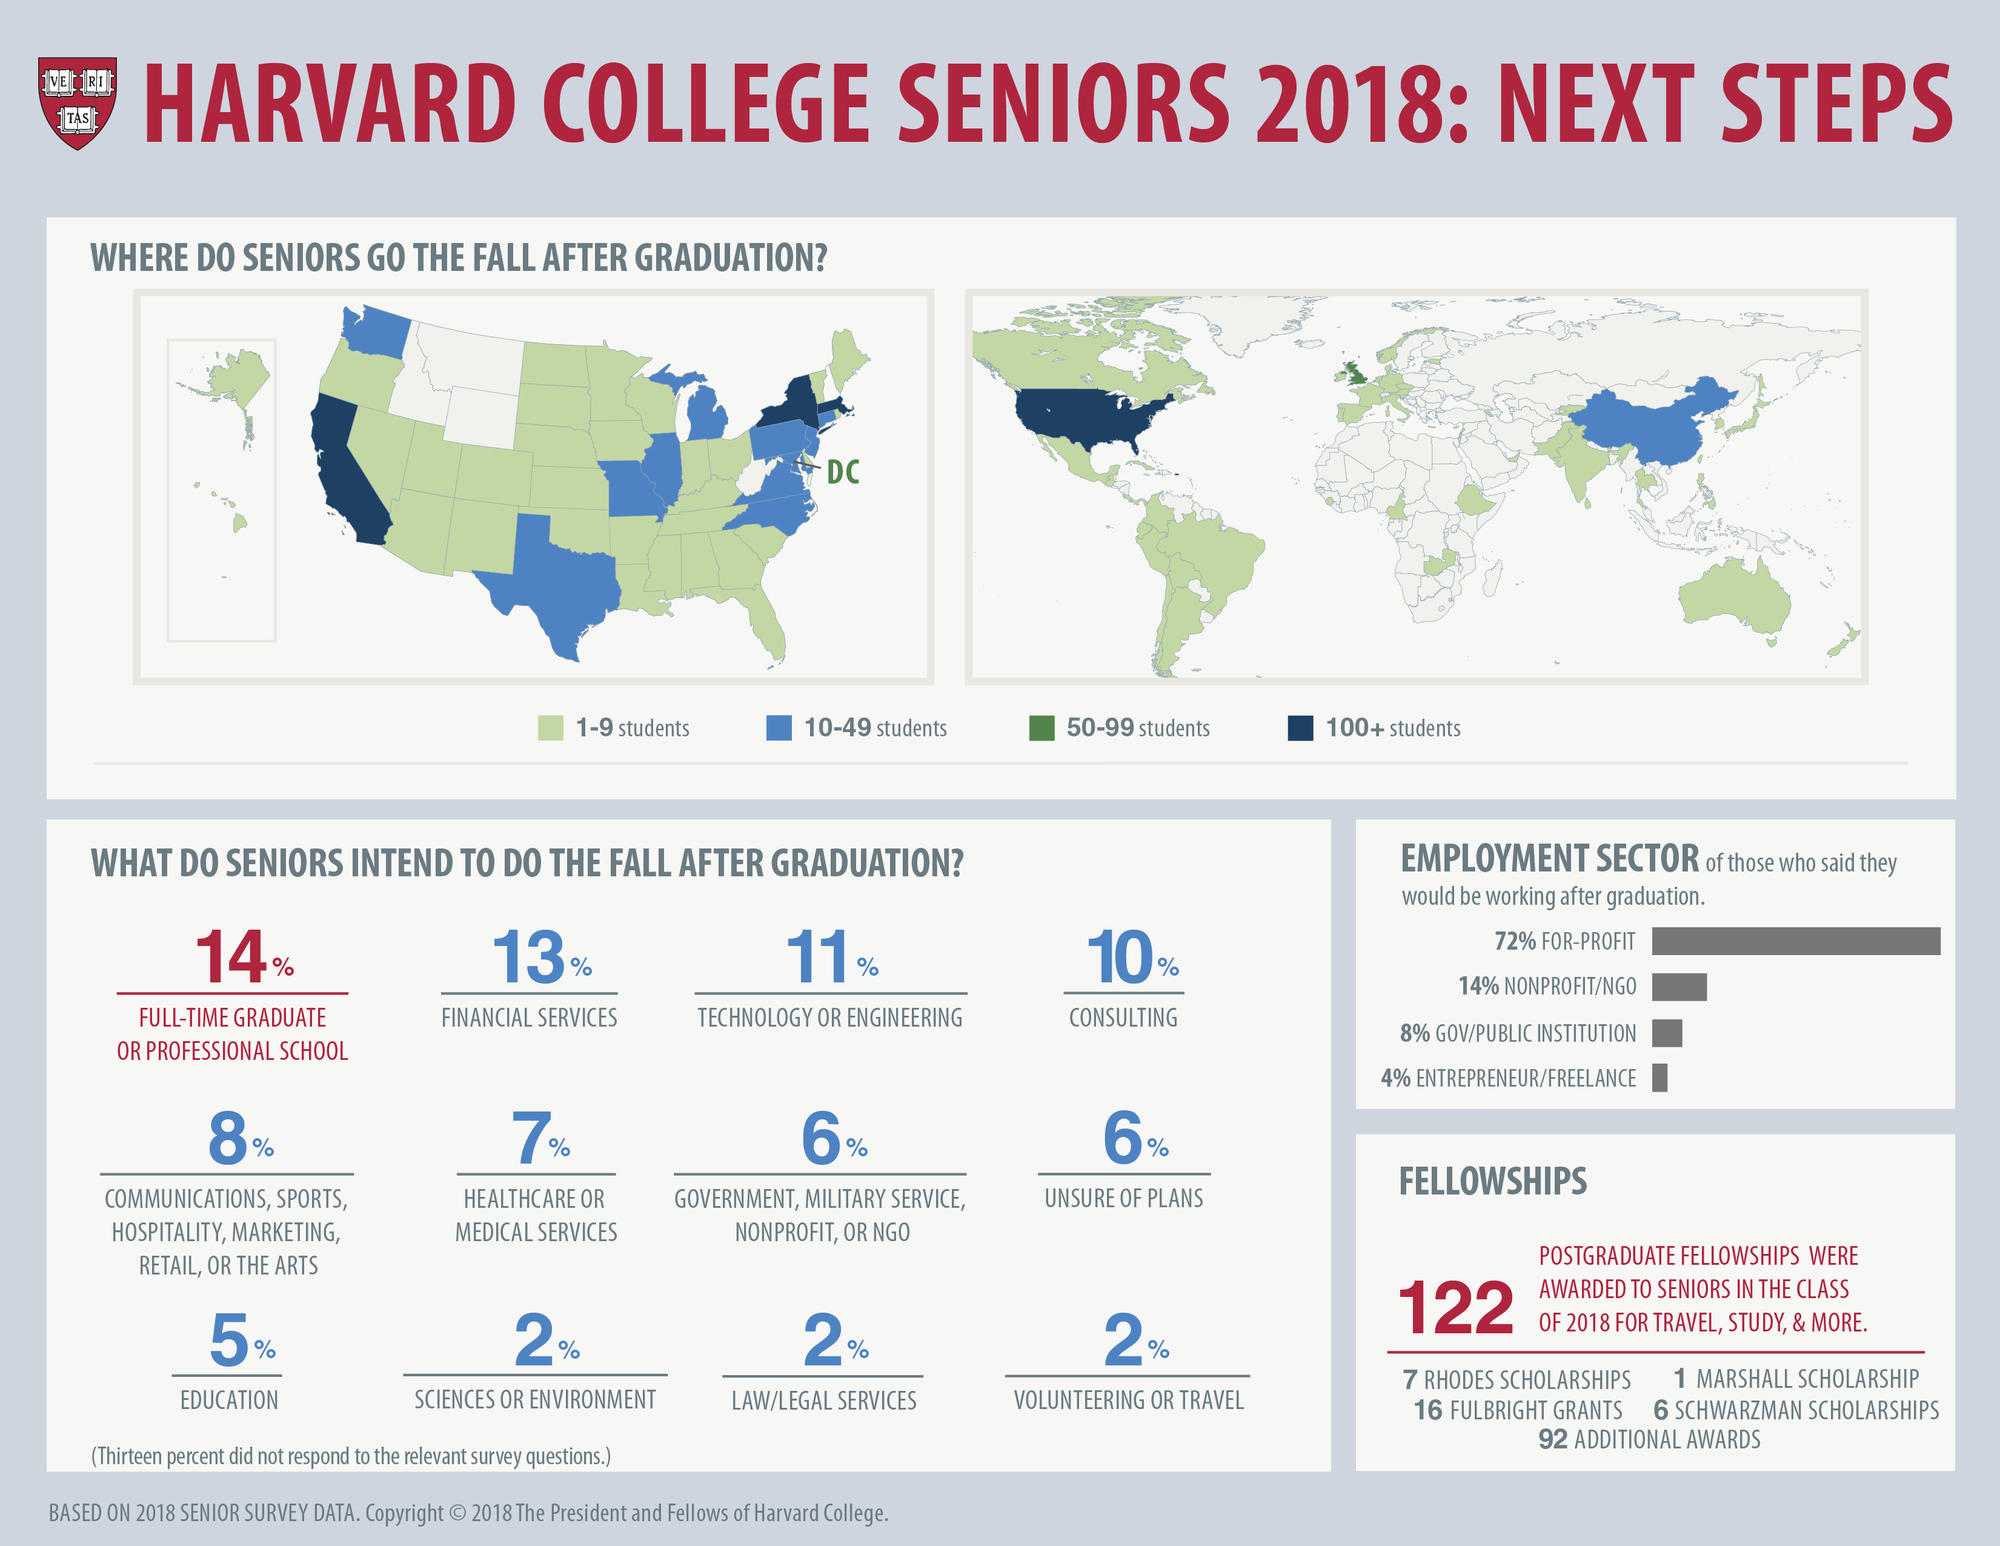 Harvard College Class of 2018 Next Steps